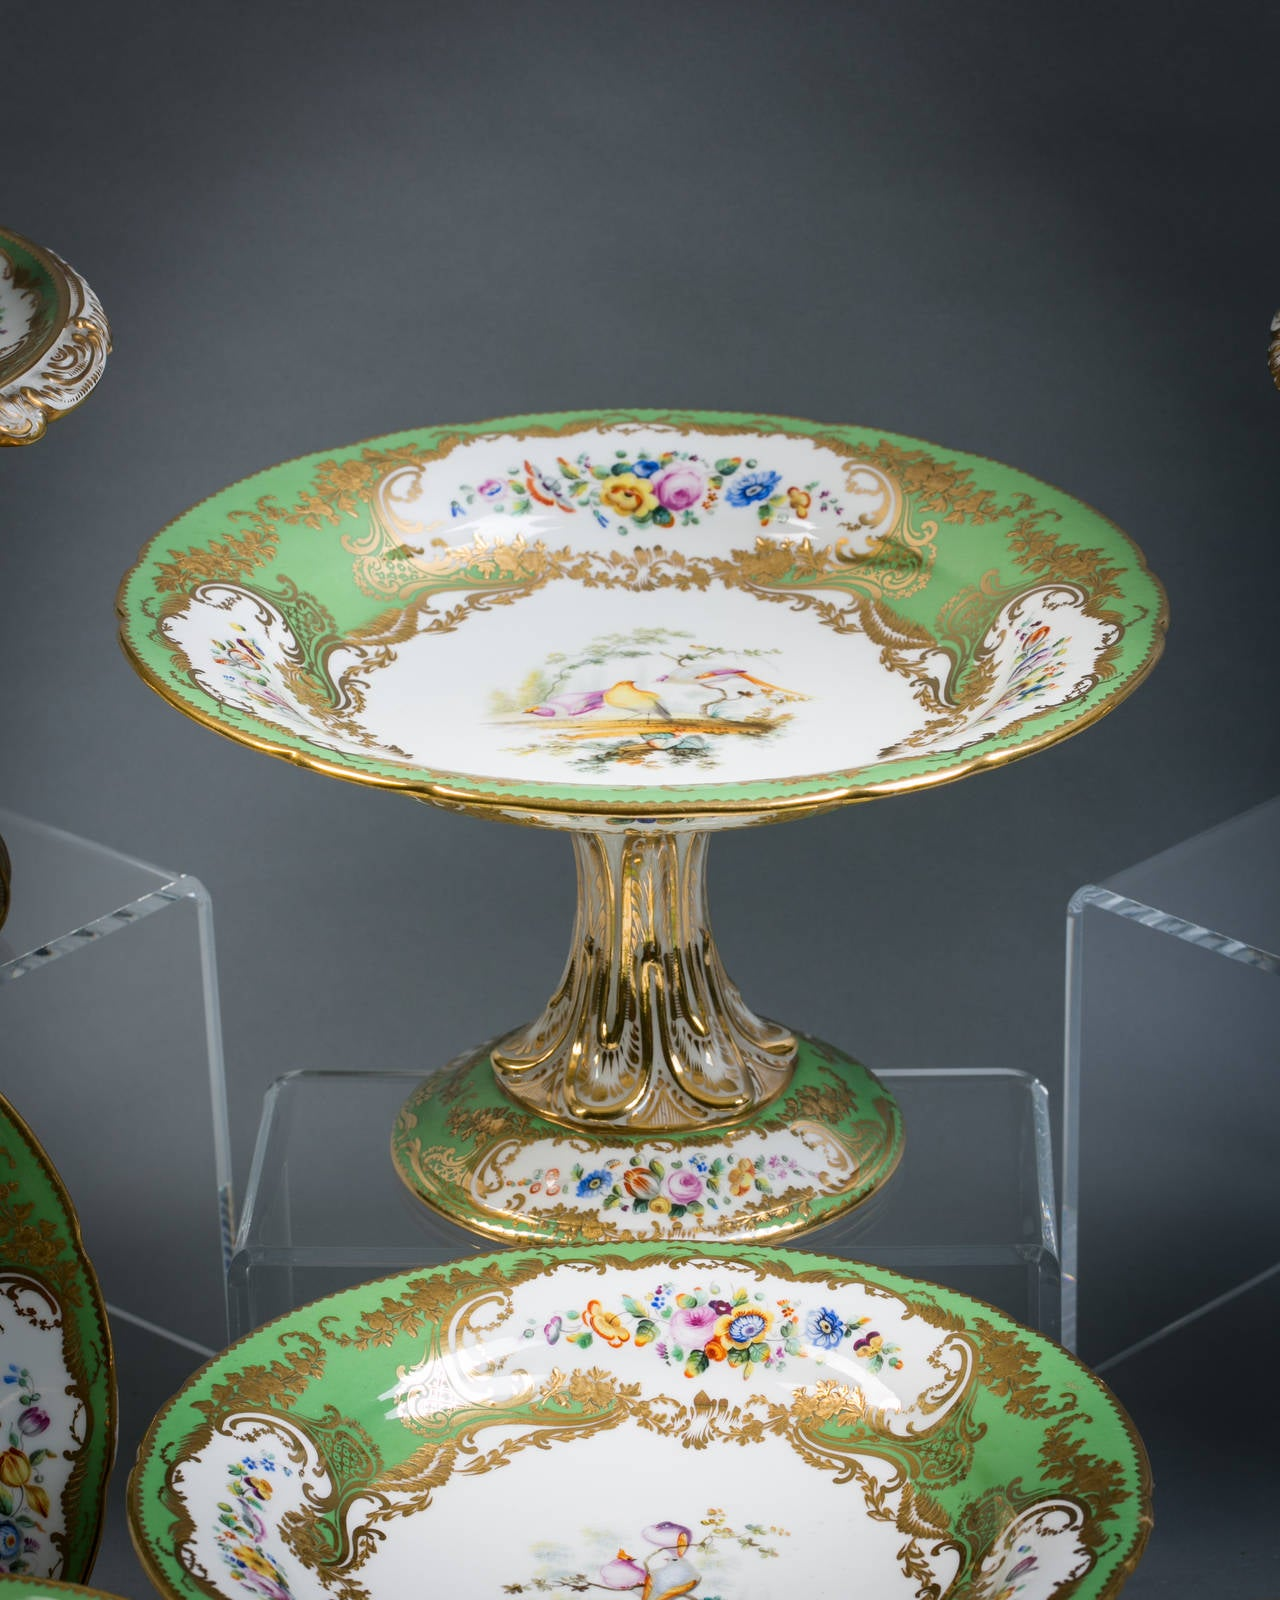 English Coalport Porcelain Dessert Service, circa 1850 In Good Condition For Sale In New York, NY